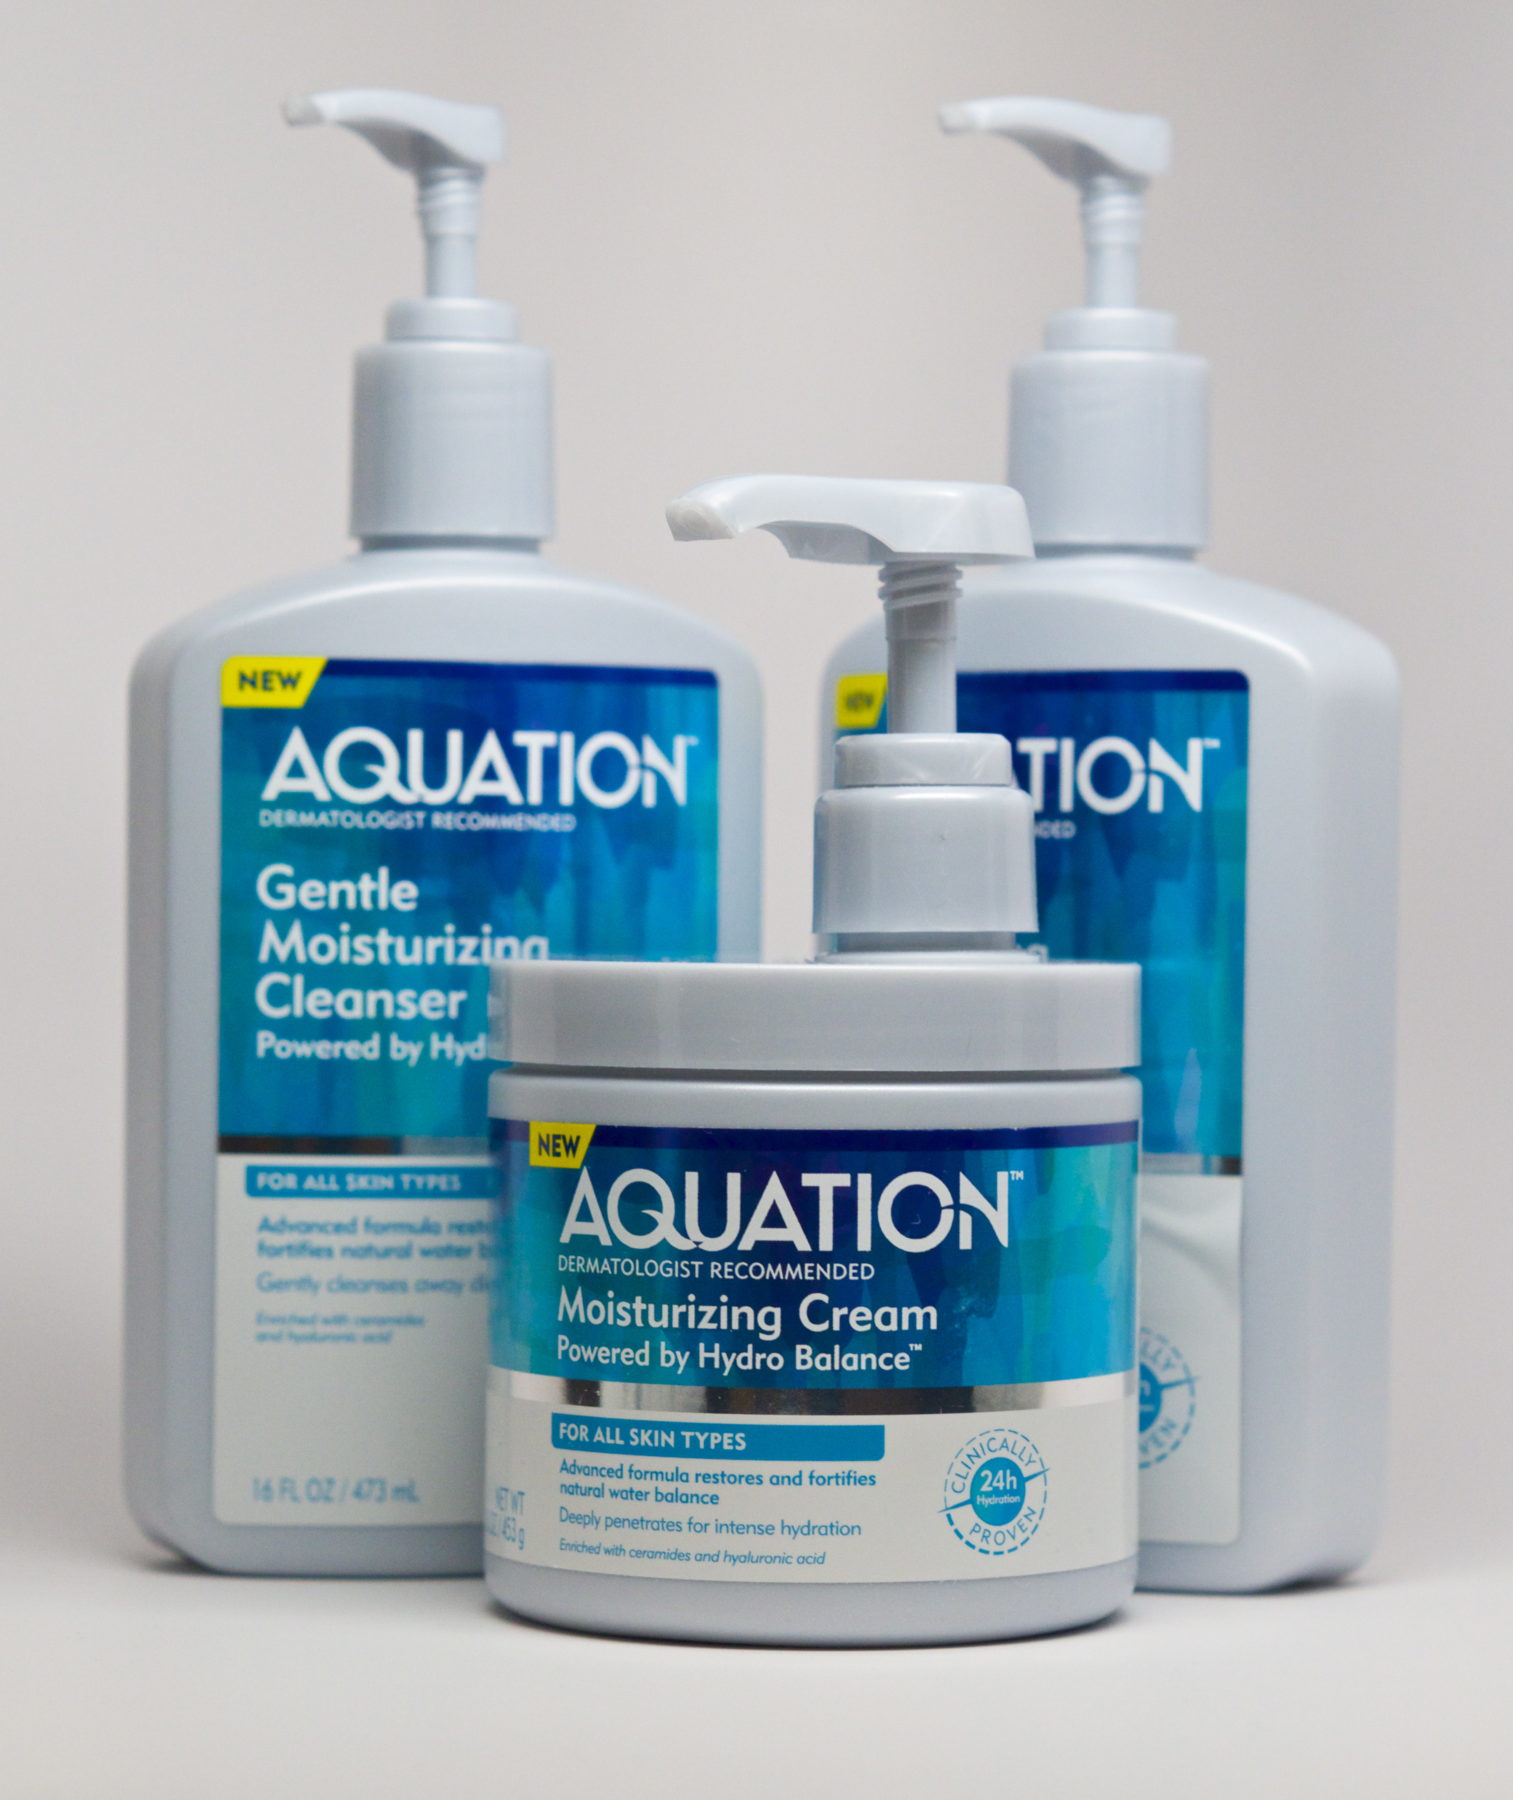 Aquation skin care products